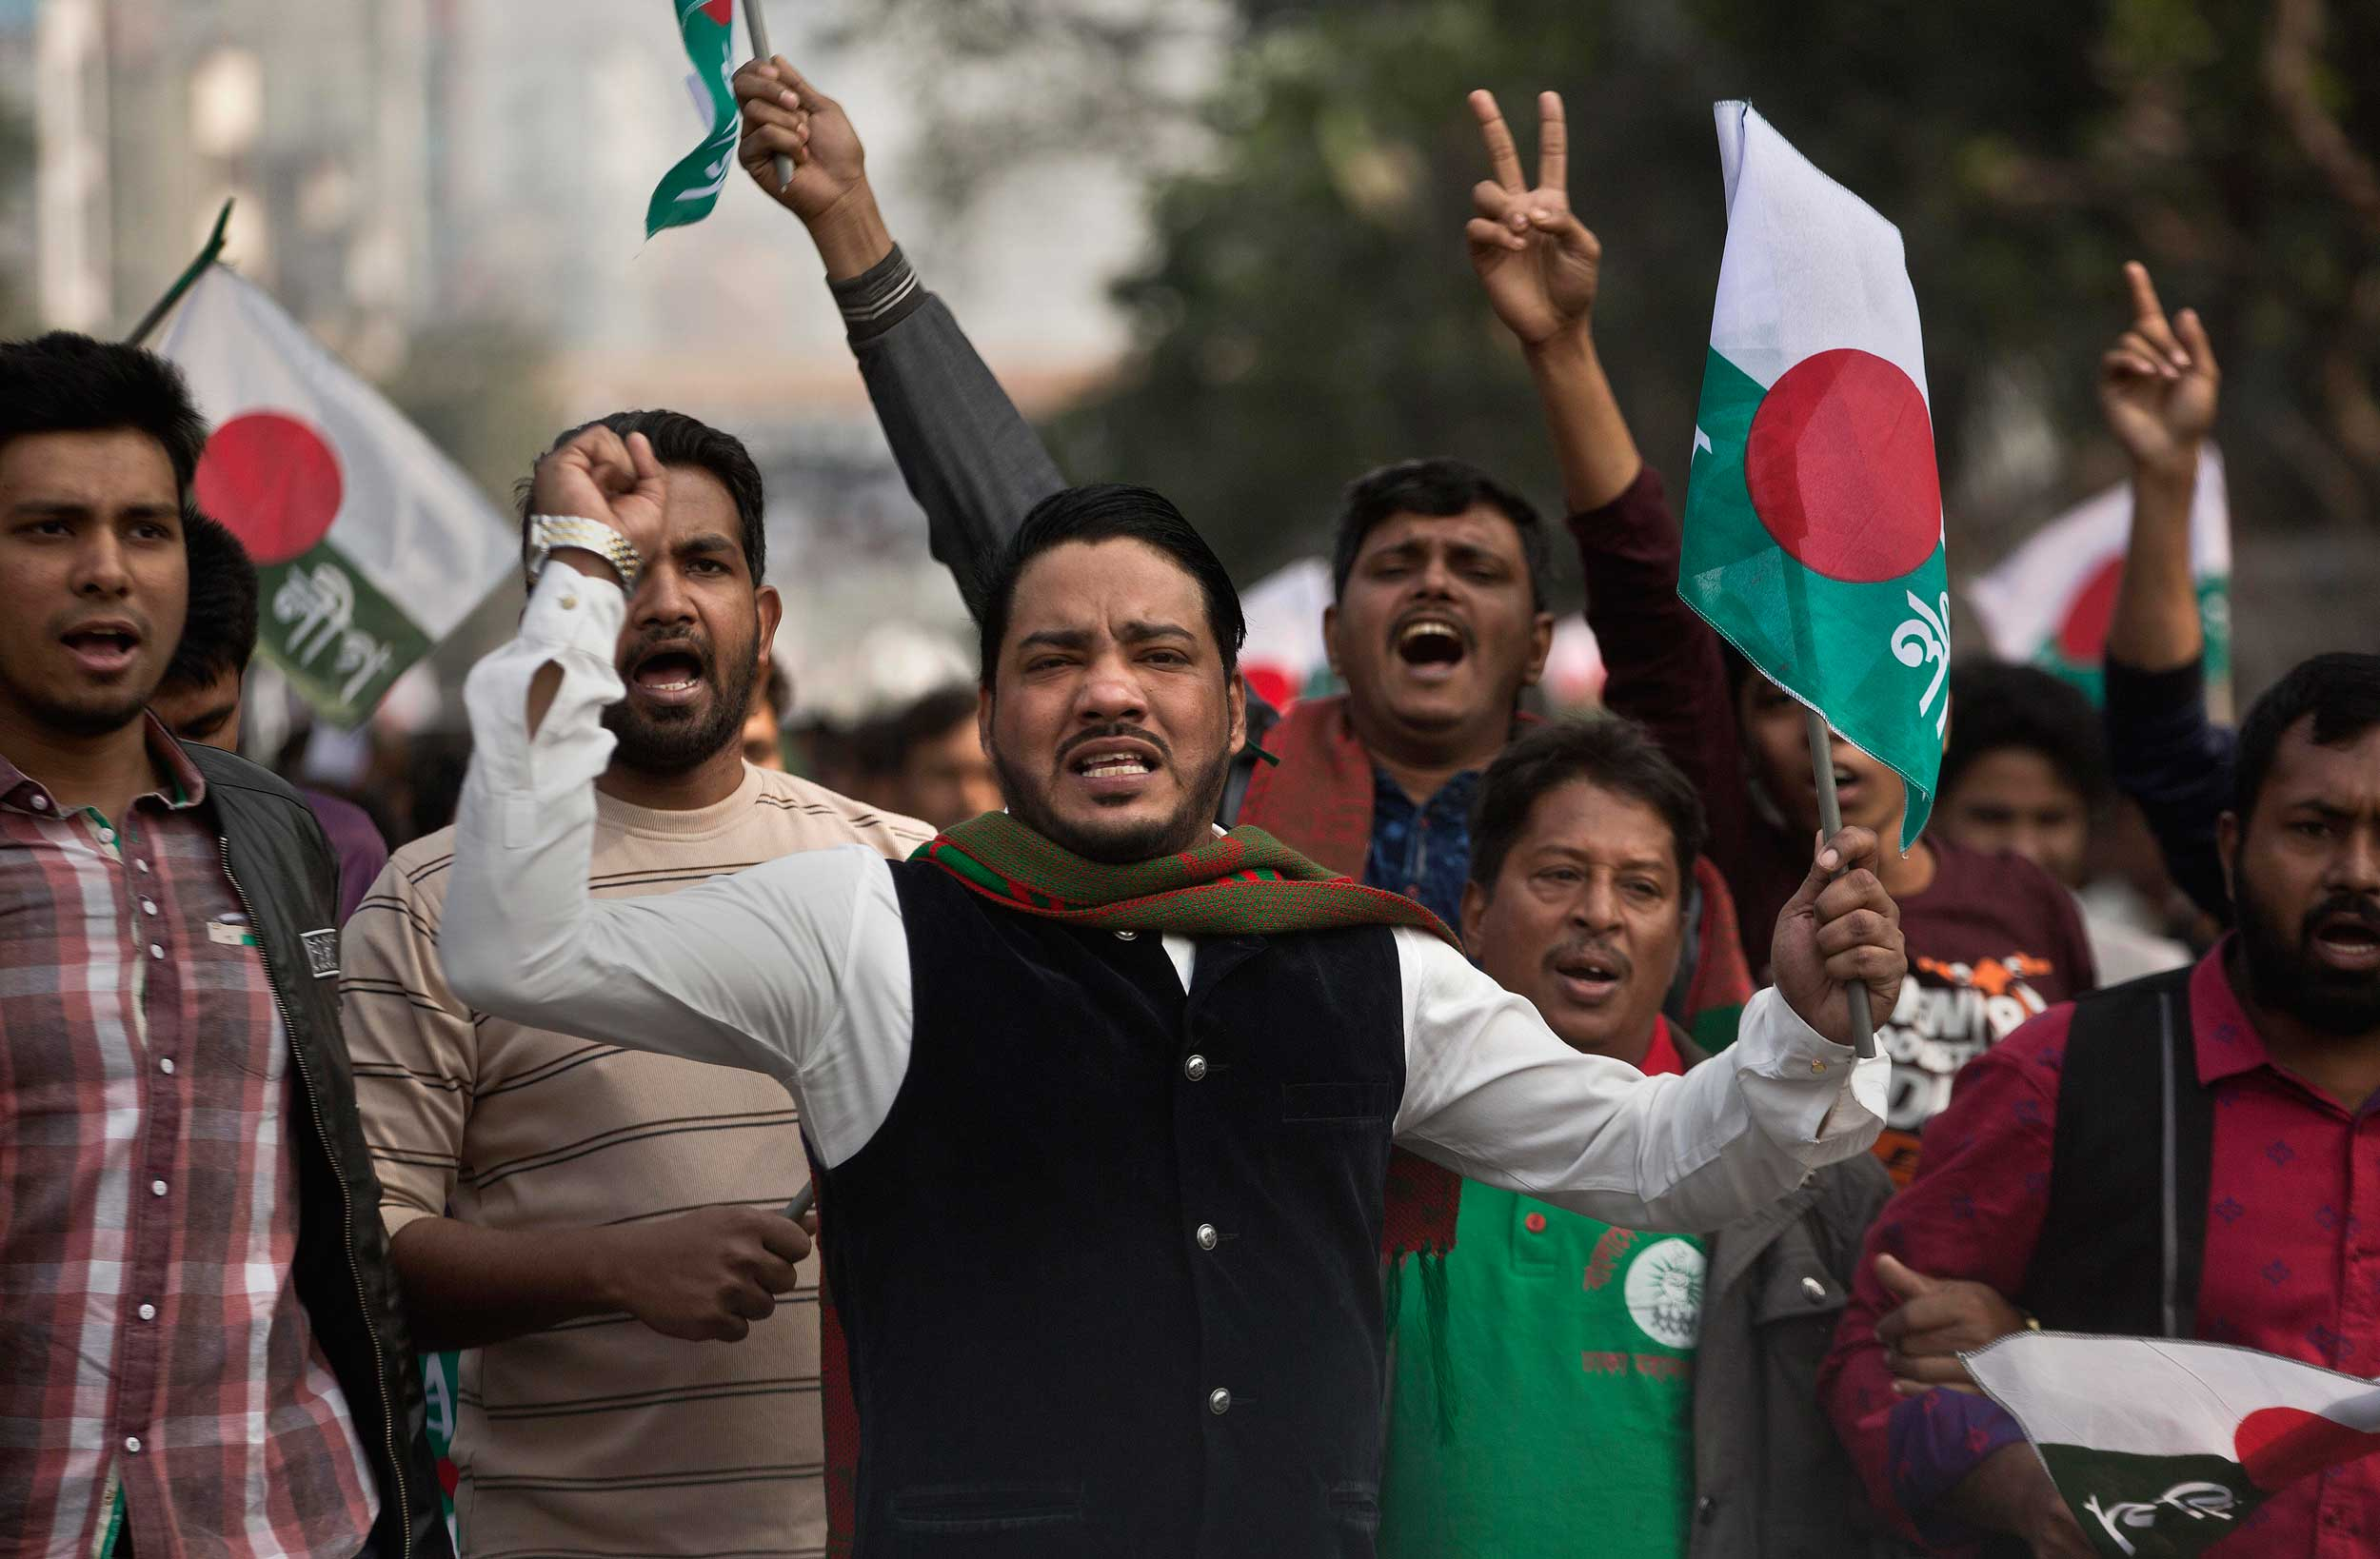 Supporters of Bangladesh Awami League shout slogans during an election rally ahead of the general elections in Dhaka on Thursday.